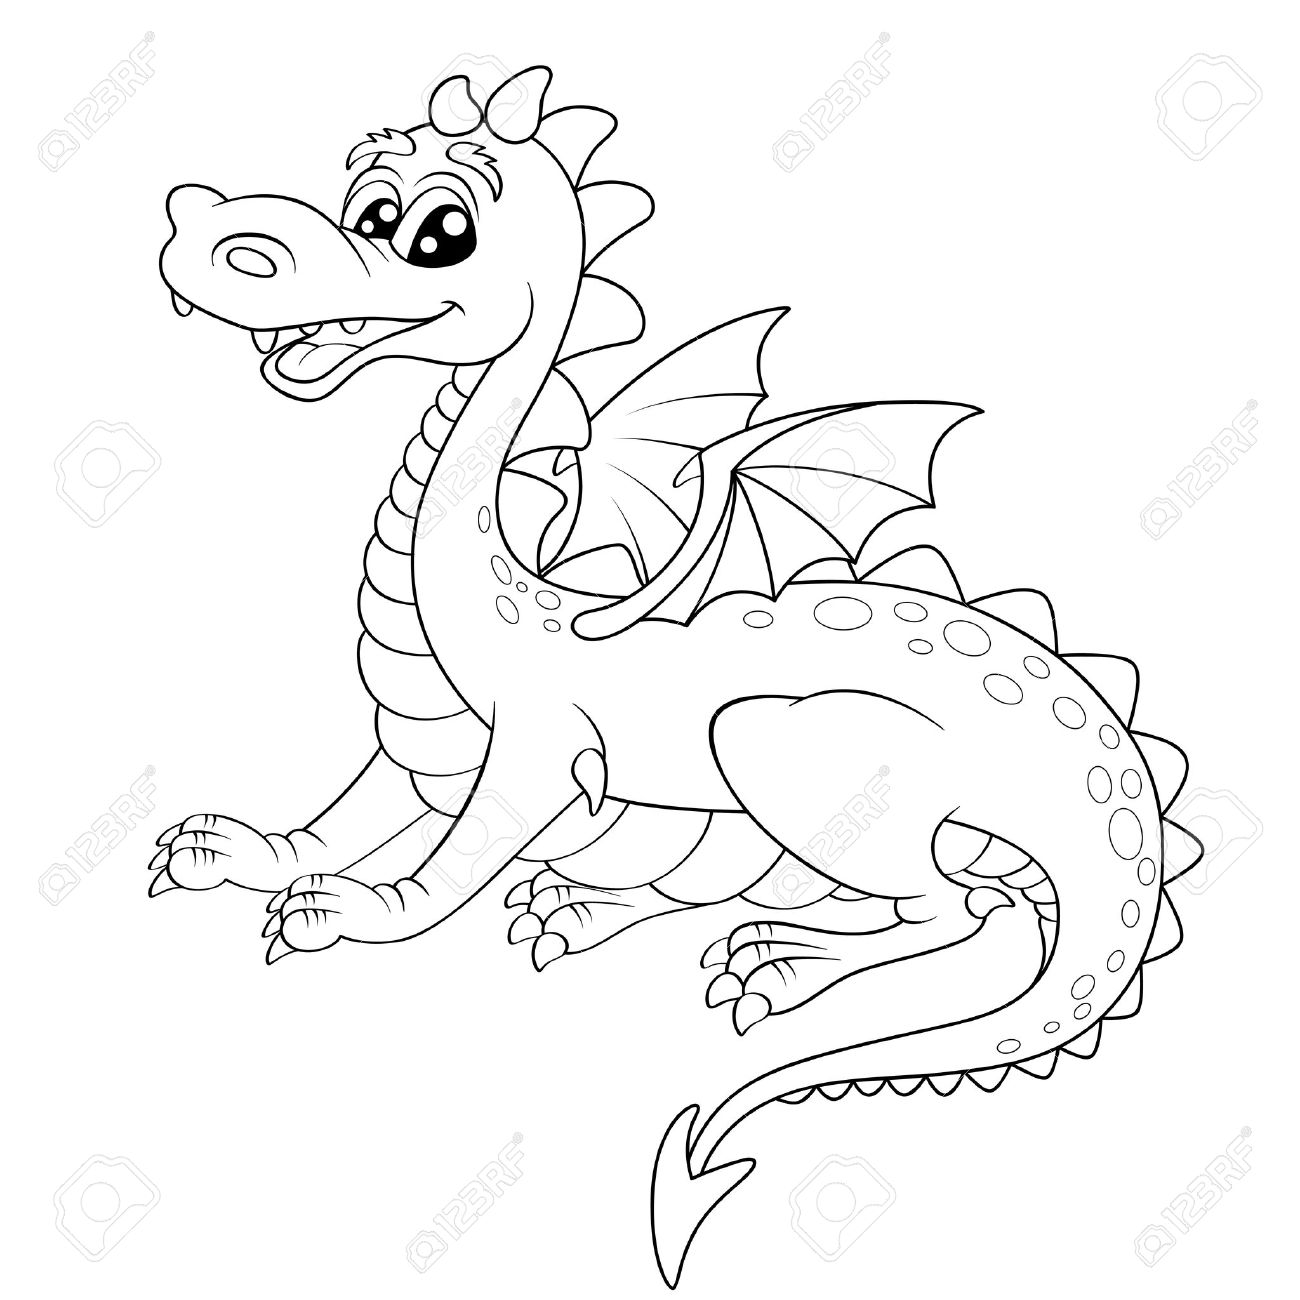 1300x1300 Cute Cartoon Dragon. Illustration For Coloring Book Royalty Free